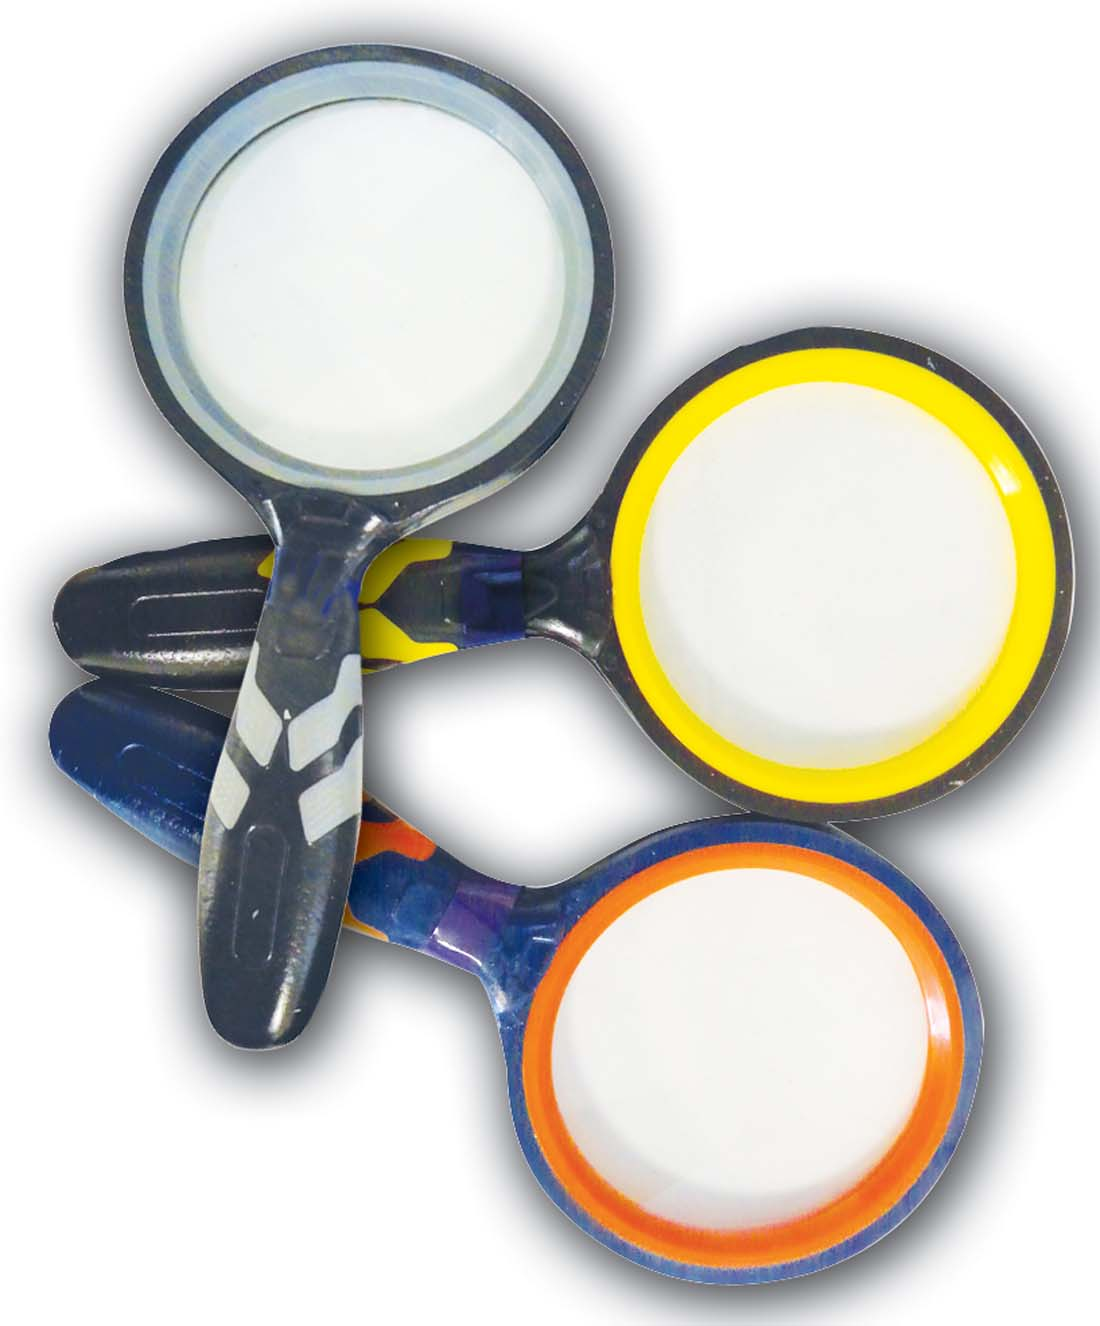 View GLASS MAGNIFIER 3 INCH WITH RUBBER GRIP ASSORTED COLORS IN DISPLAY